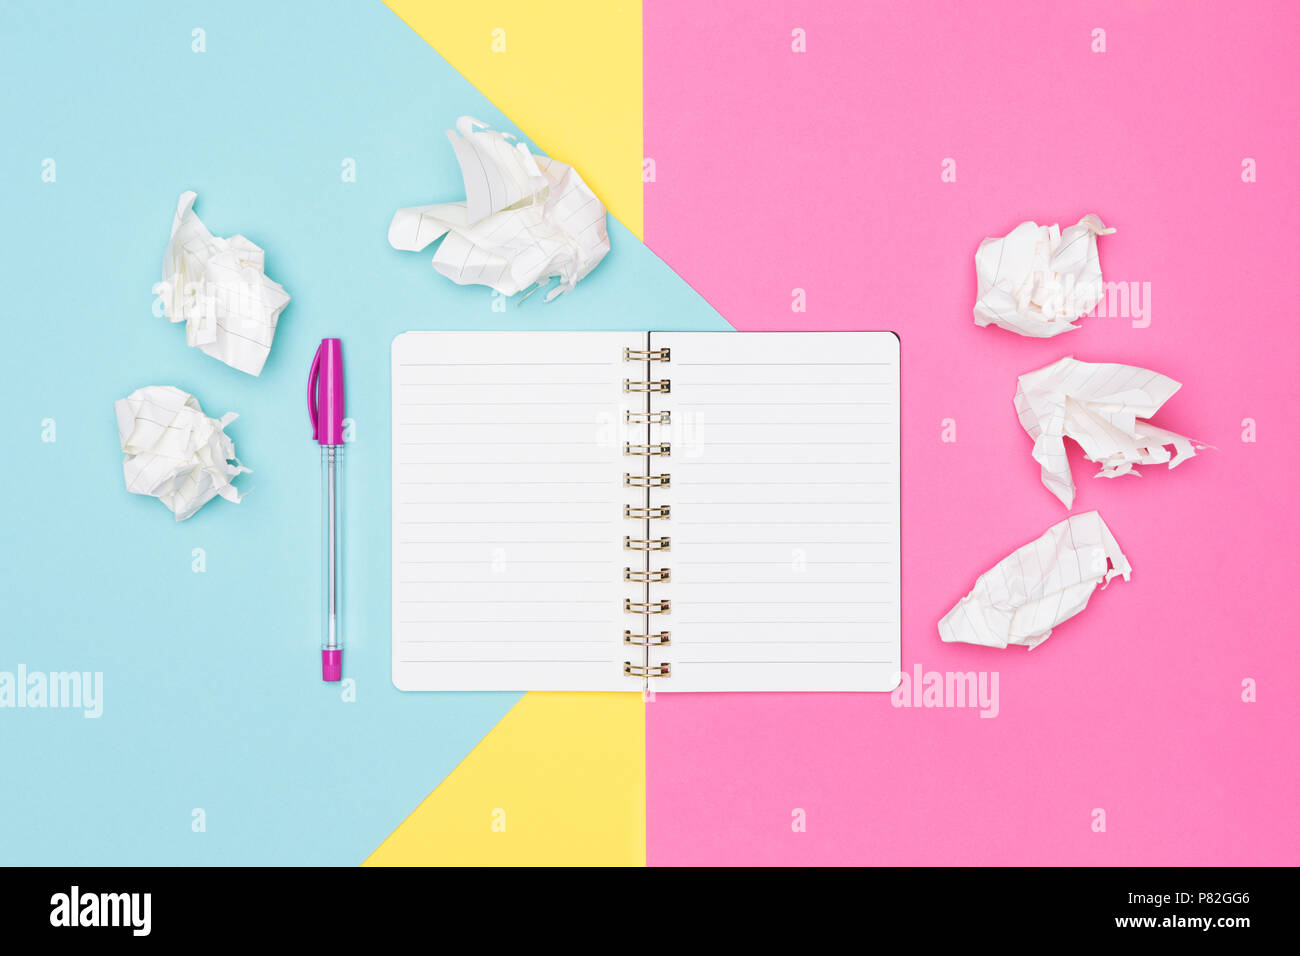 Writer's block. Ideas, brainstorming, creativity, imagination, deadline, frustration concept. Top view photo of office desk. - Stock Image